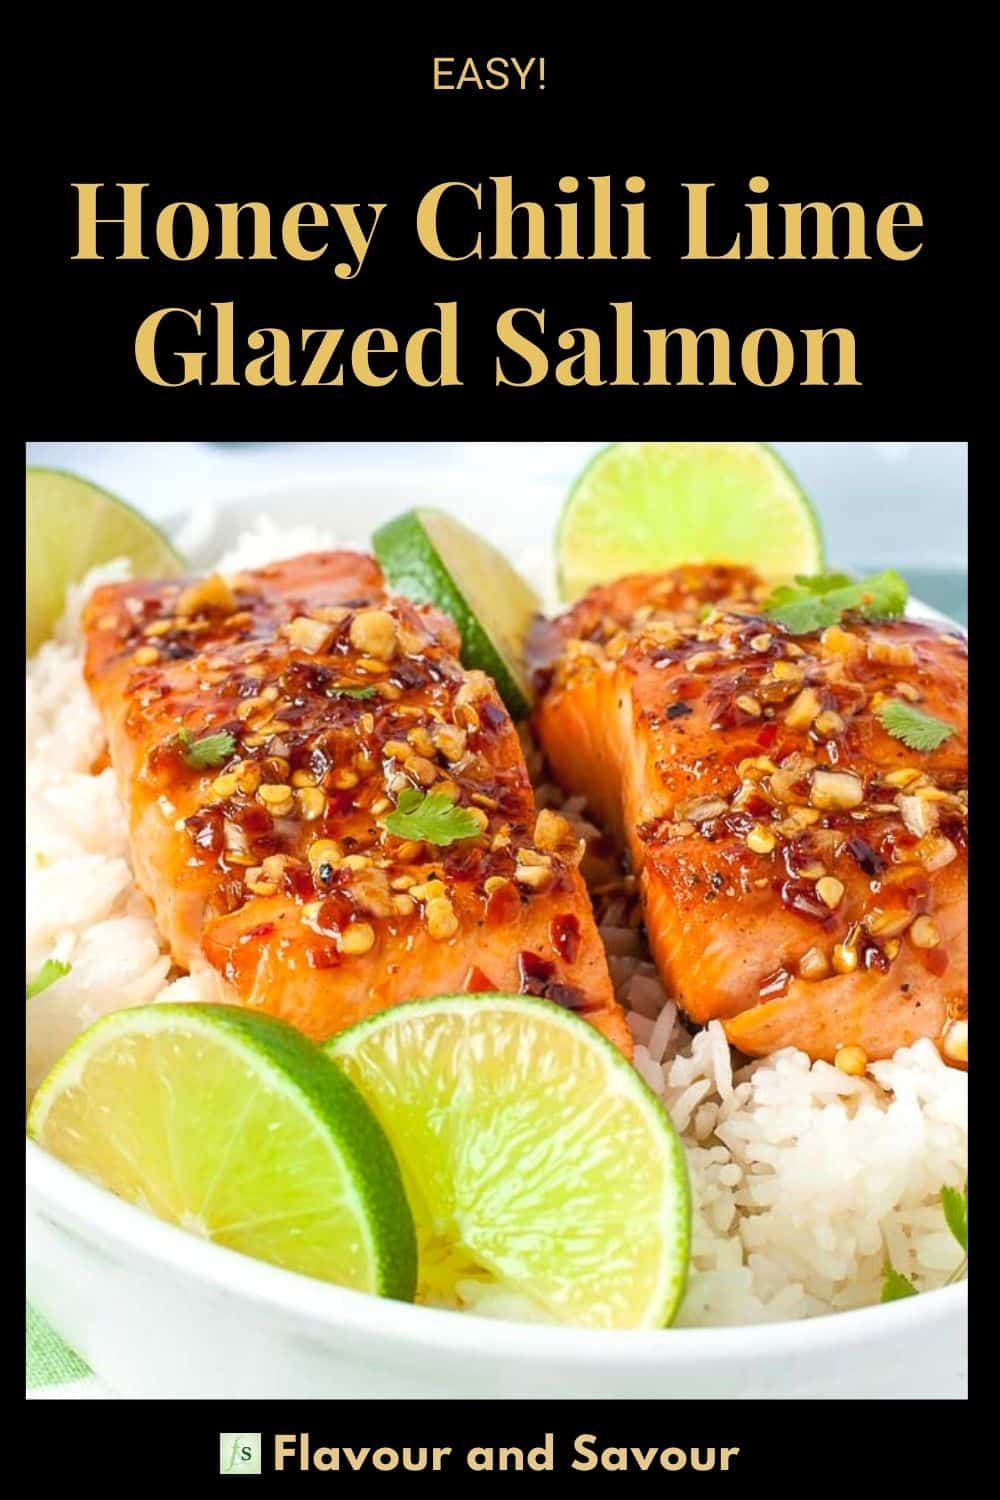 Image with Text Overlay for Honey Chili Lime Glazed Salmon